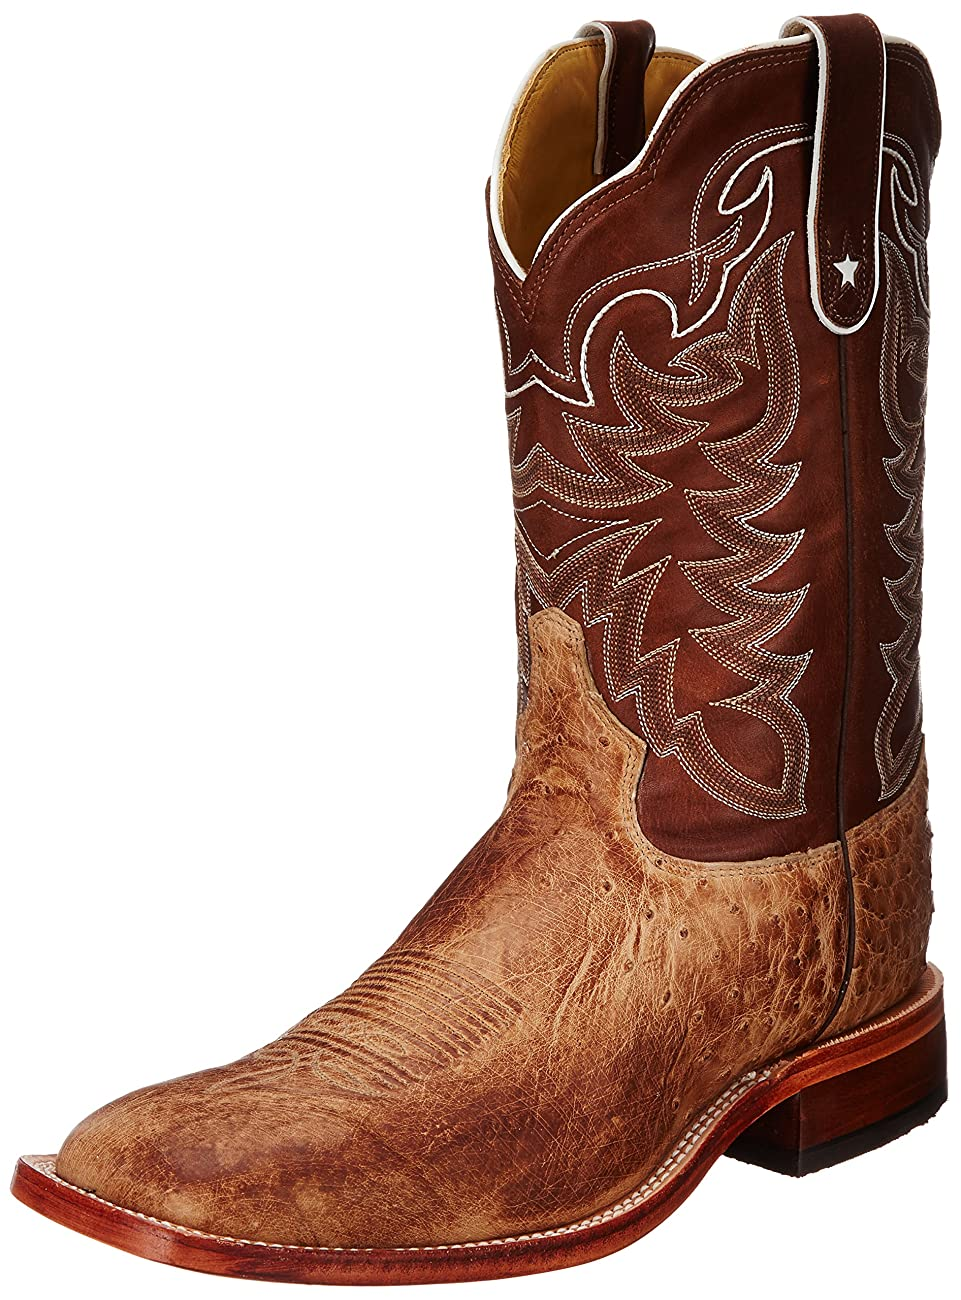 Tony Lama Men's Vintage Smooth Ostrich Western Boot 0